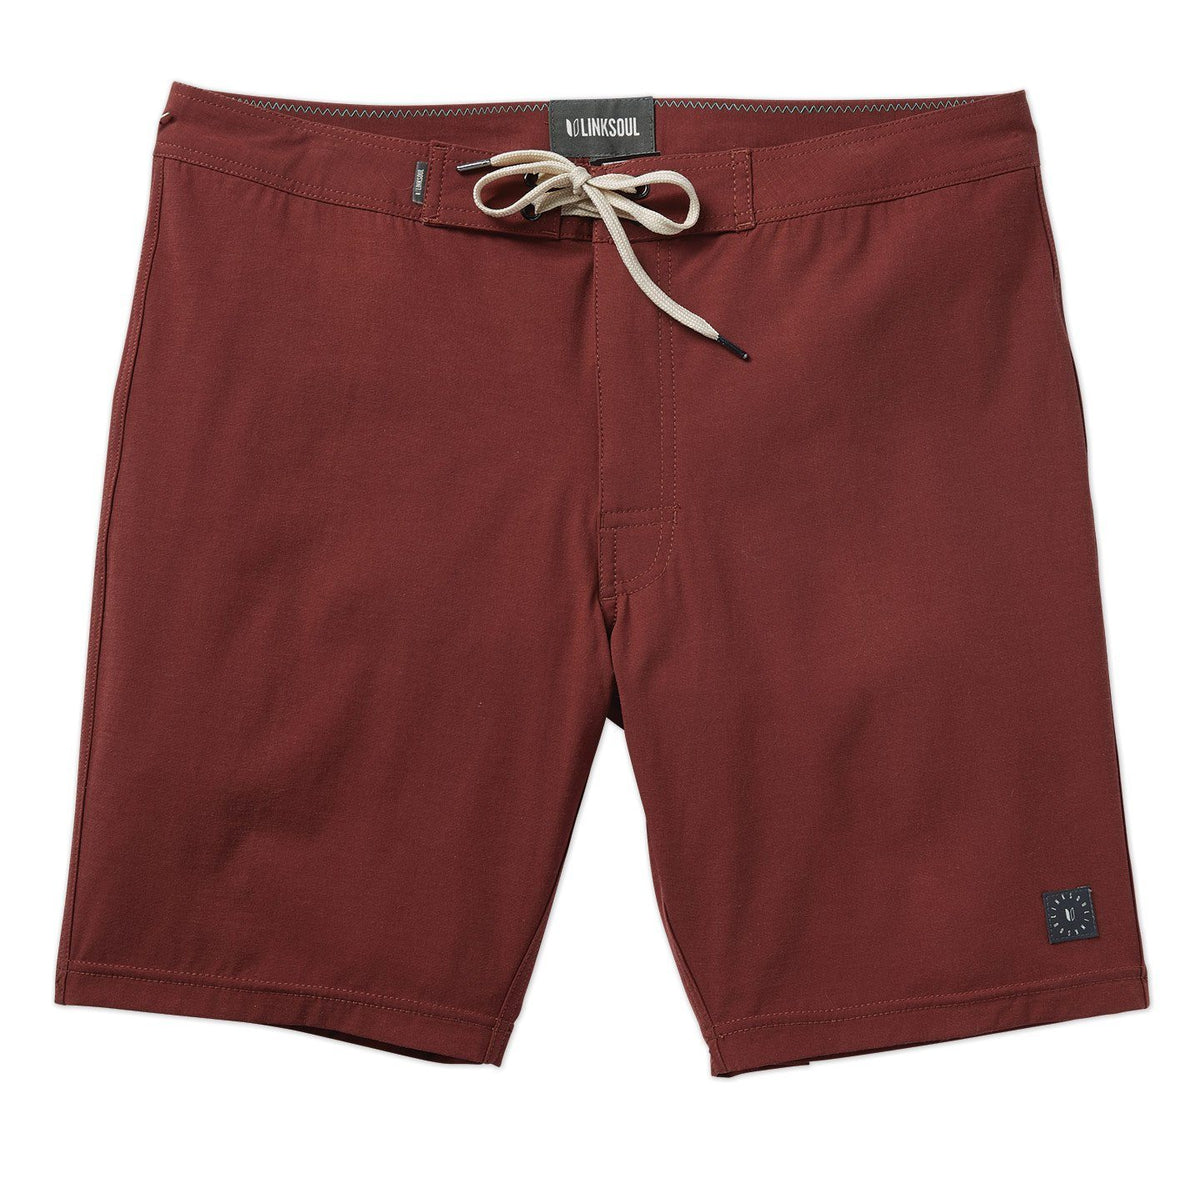 Solid Color Boardshort